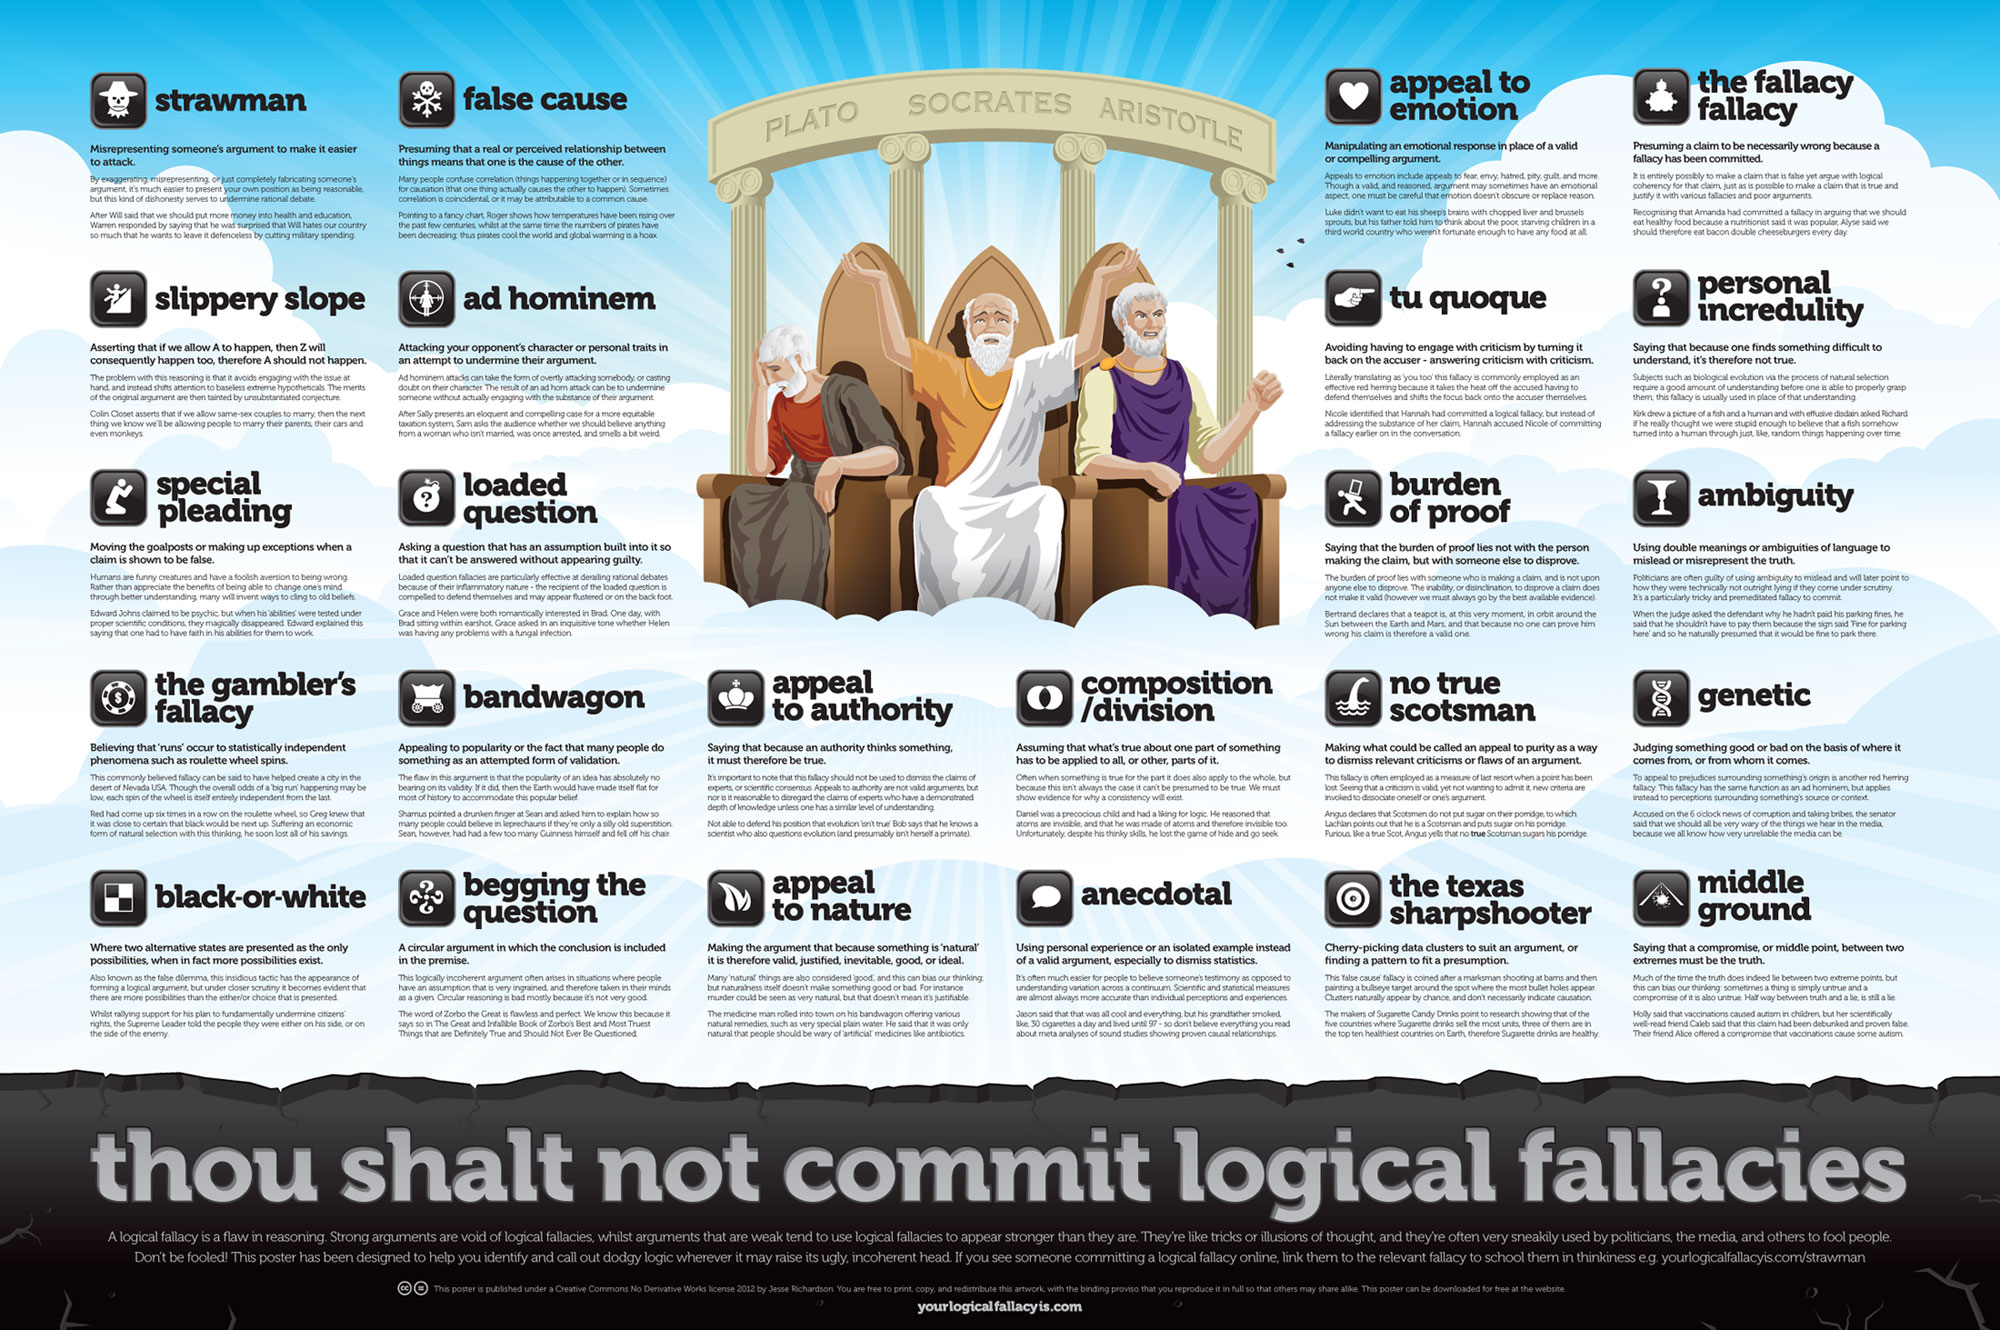 Logical Fallacies poster from yourlogicalfallacyis.com